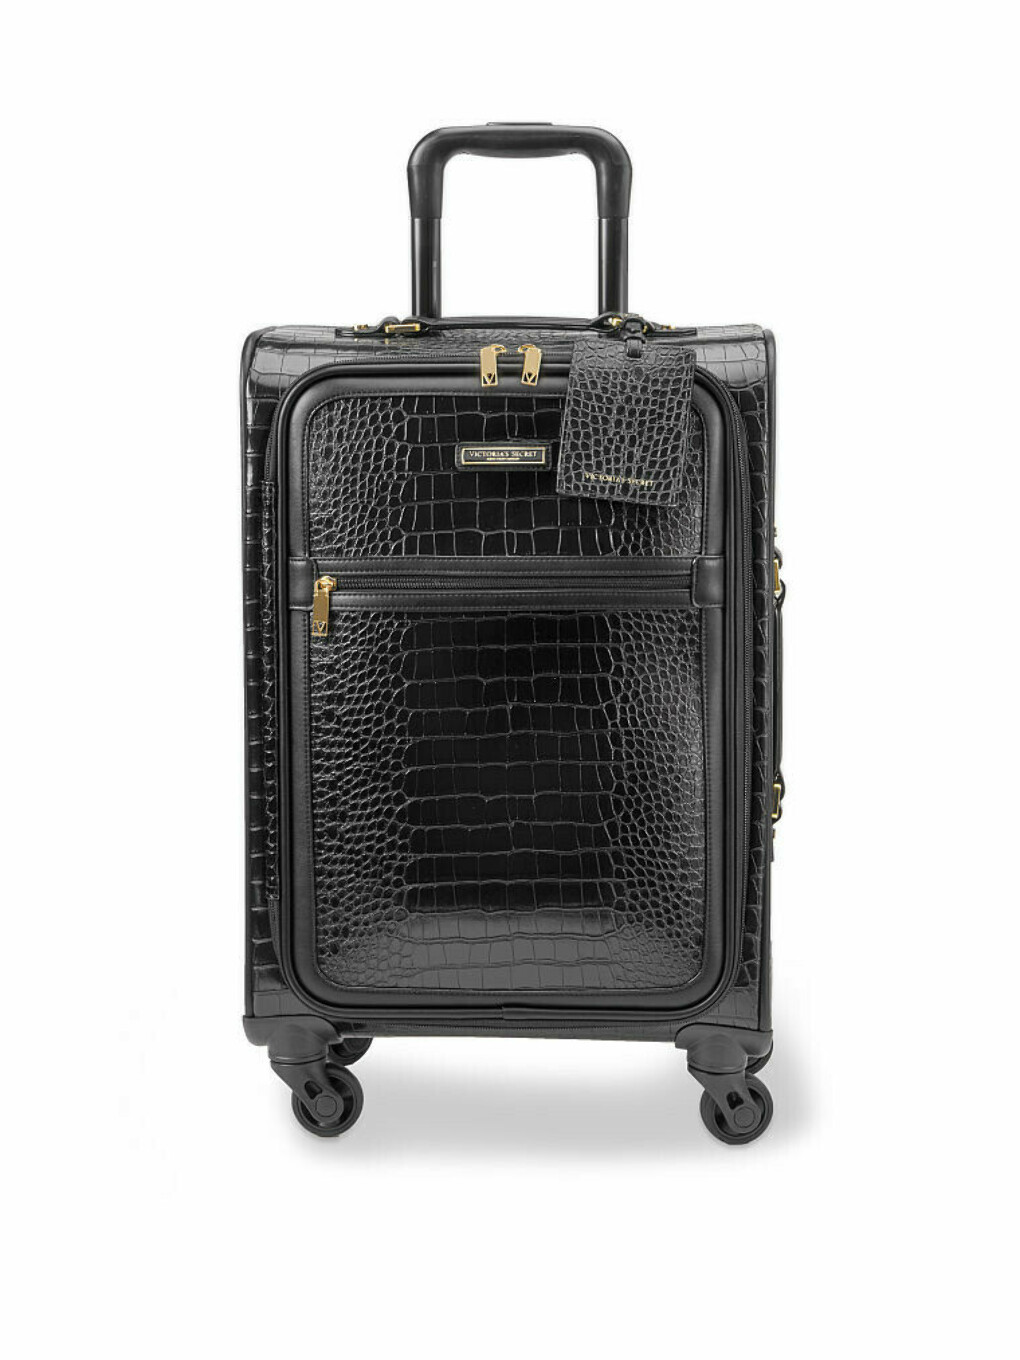 VICTORIA'S SECRET The VS Getaway Carry-On Suitcase